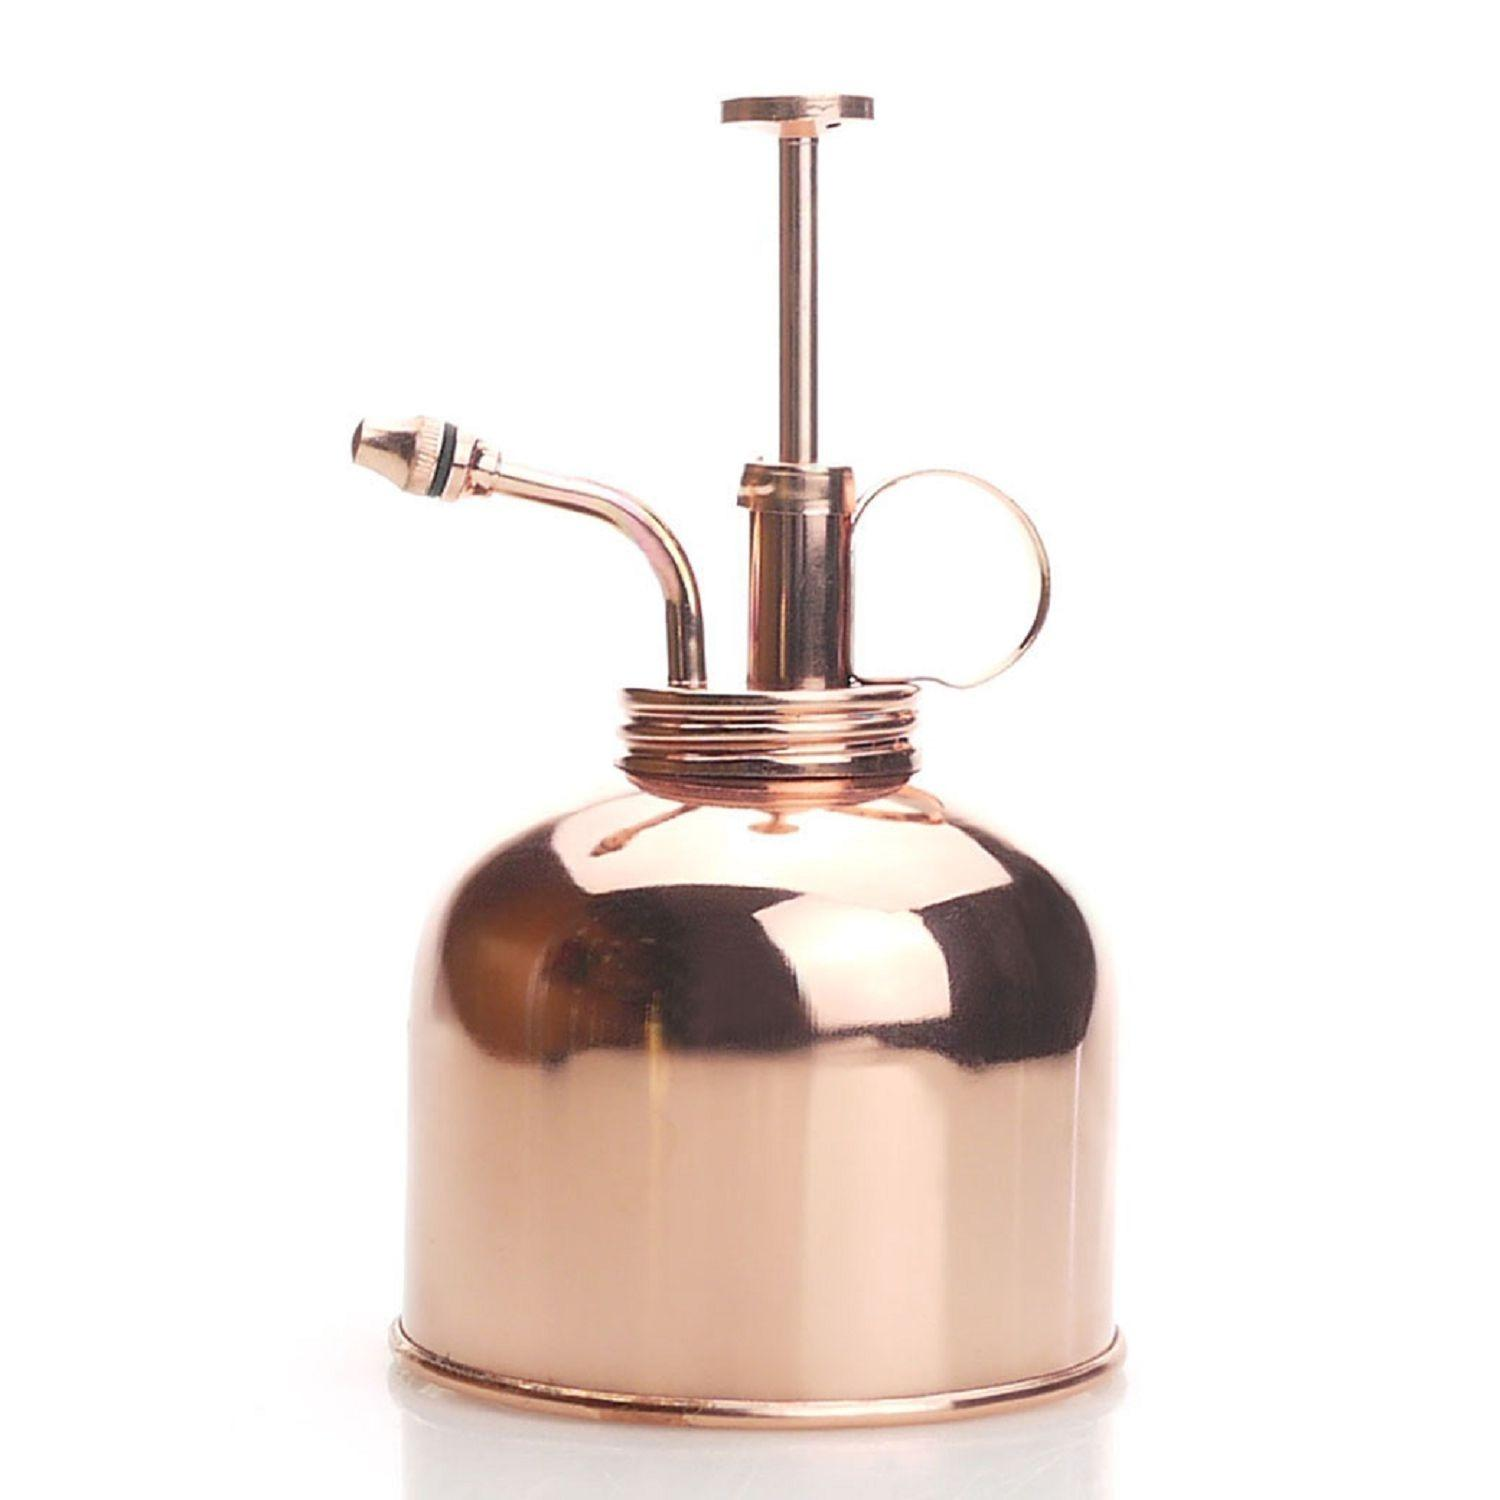 Sale Purism Style Plant Mister Brass Sprayer Rose Gold Color Purism Style Cheap